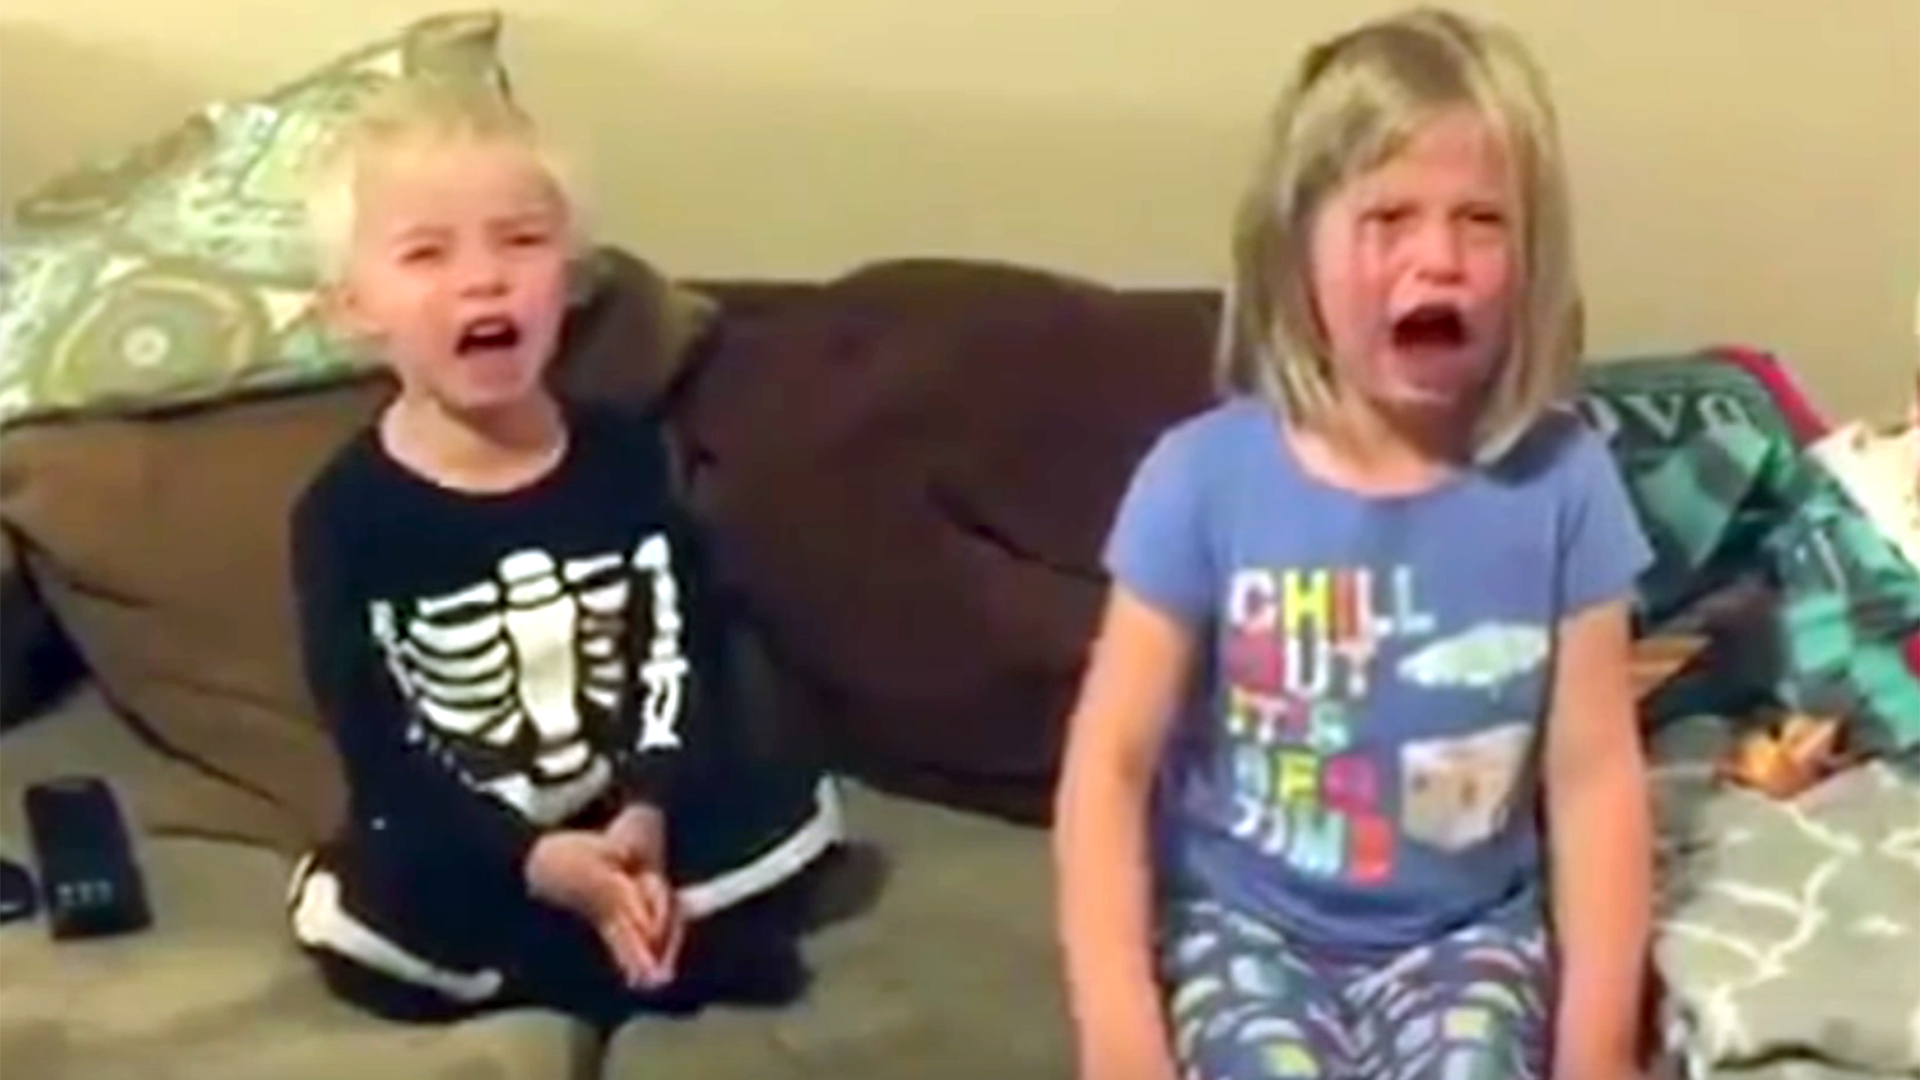 Halloween Candy Prank.Jimmy Kimmel S Halloween Candy Prank Has Kids Crying Cursing And Even Forgiving